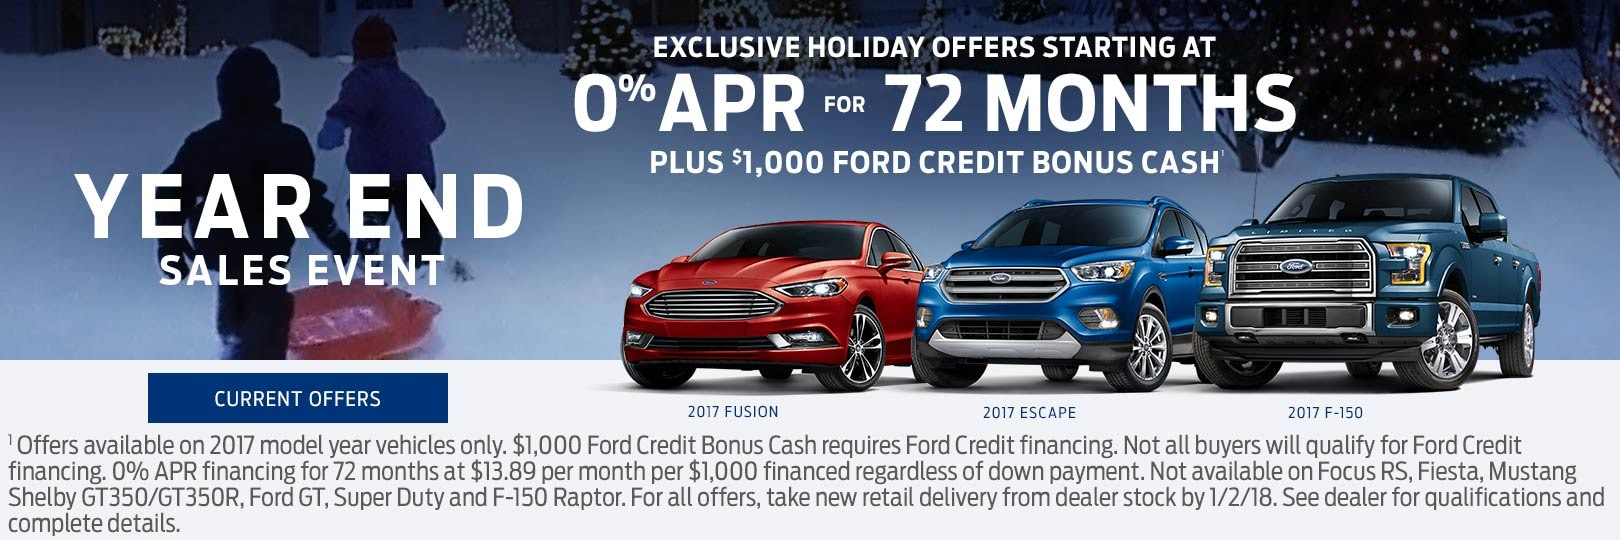 Fresno Lithia Ford Lincoln Of Fresno New Used Ford